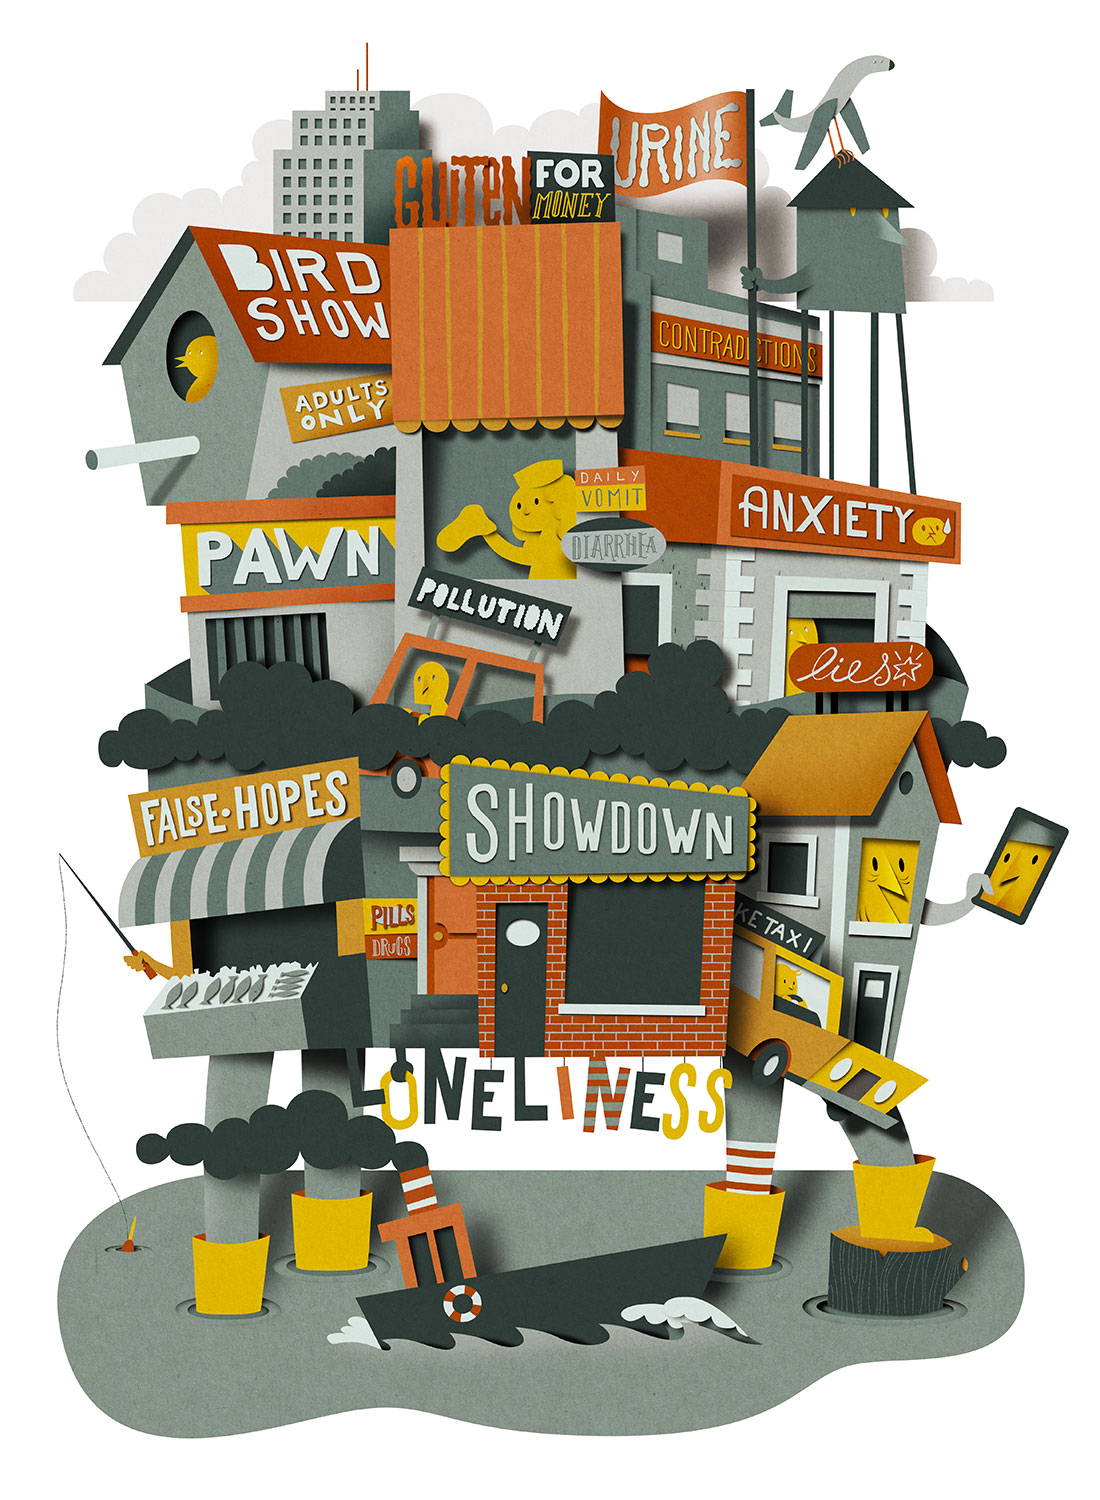 Richard Solomon - habitat_poster_illustration_papercut_bomboland2